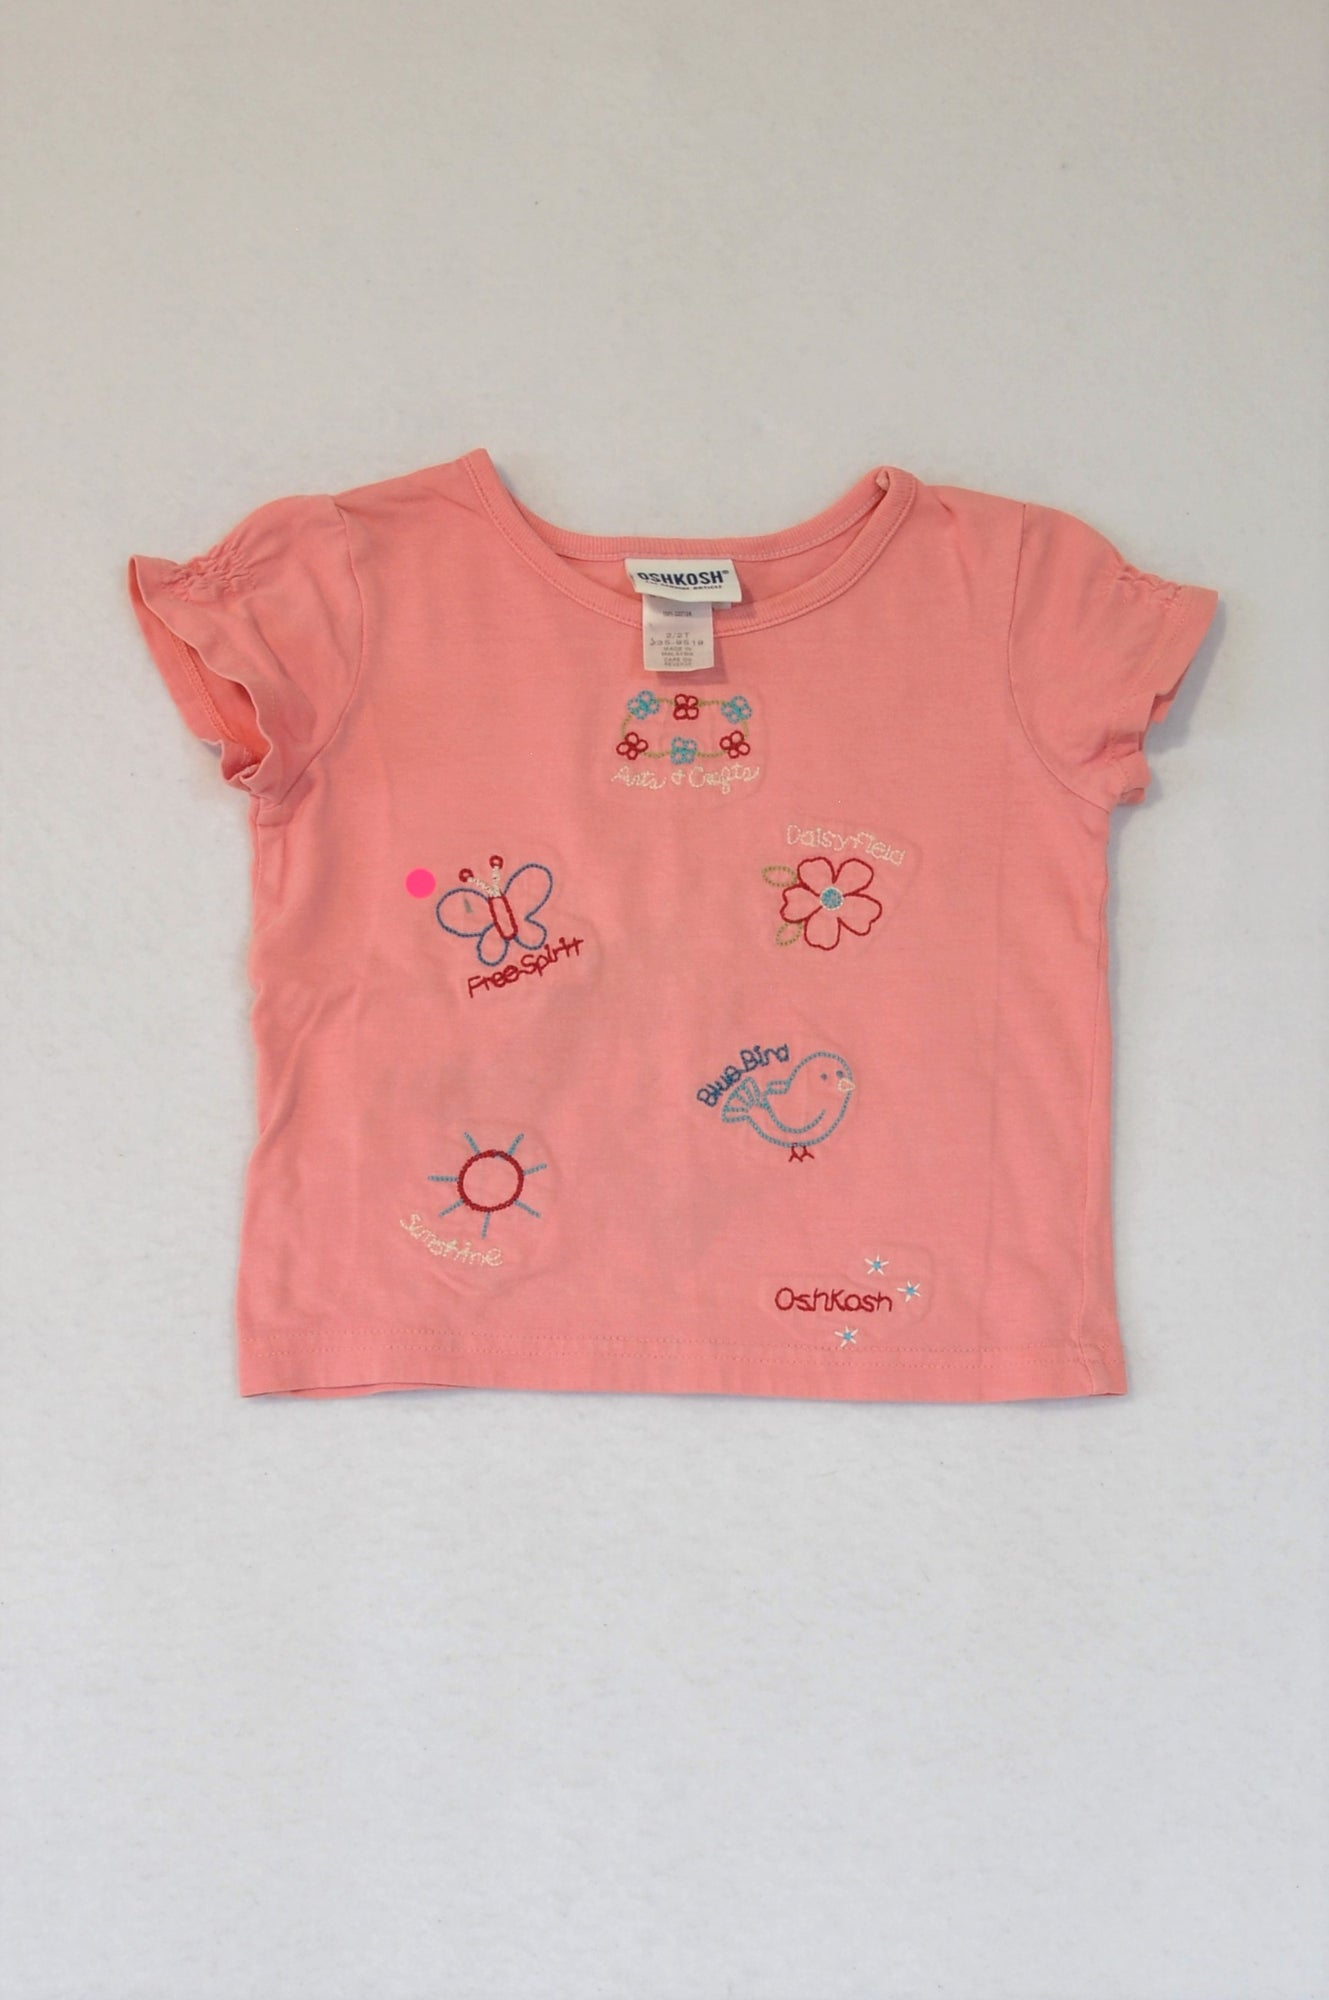 OshKosh Dusty Pink Embroidered T-shirt Girls 1-2 years